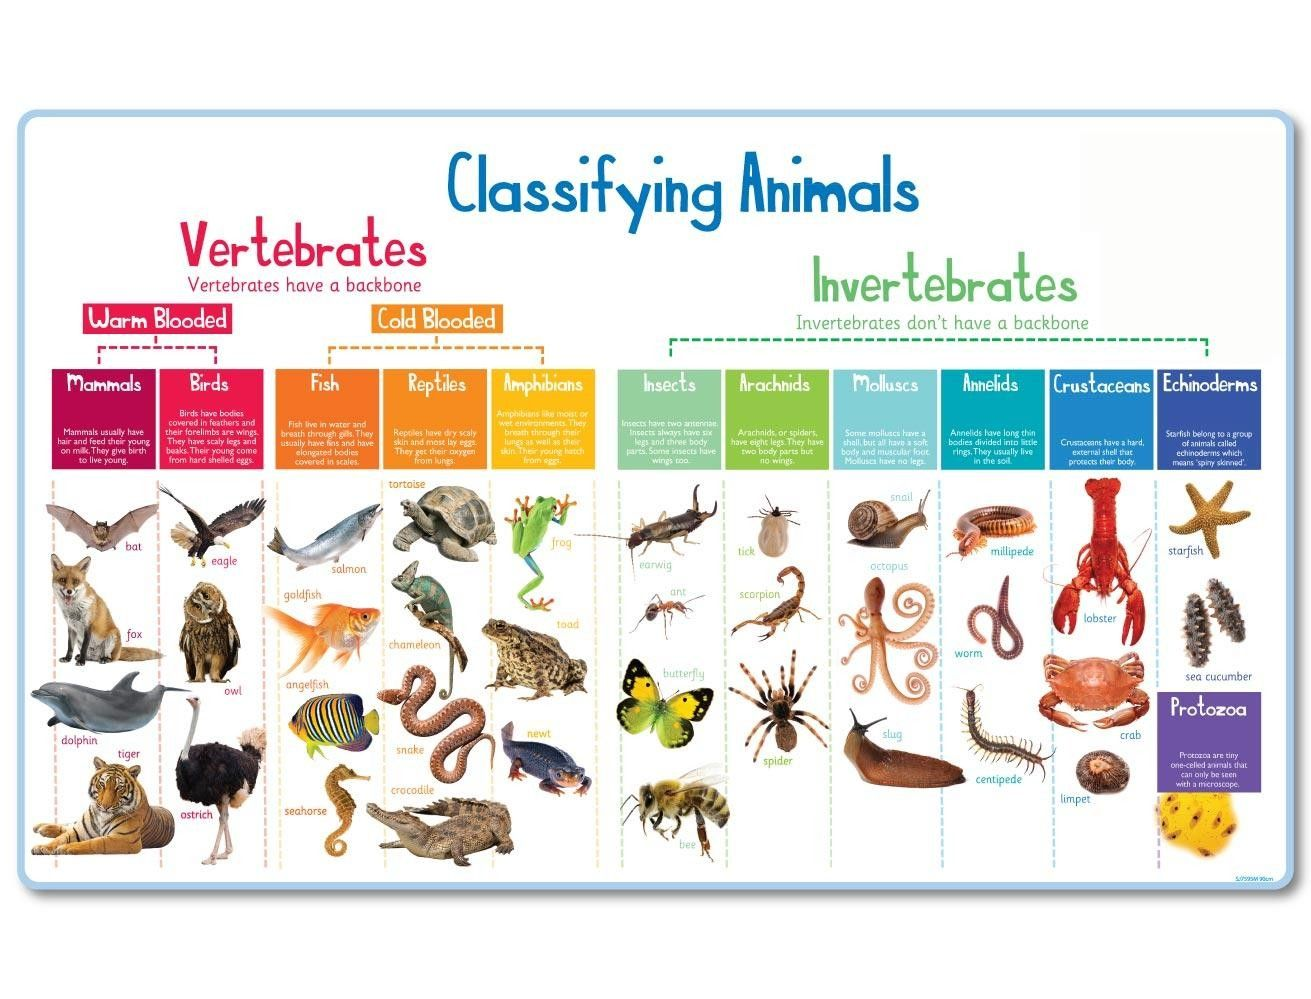 Pin By Chris On Placemats Vertebrates And Invertebrates Animal Classification Classifying Animals [ 999 x 1311 Pixel ]